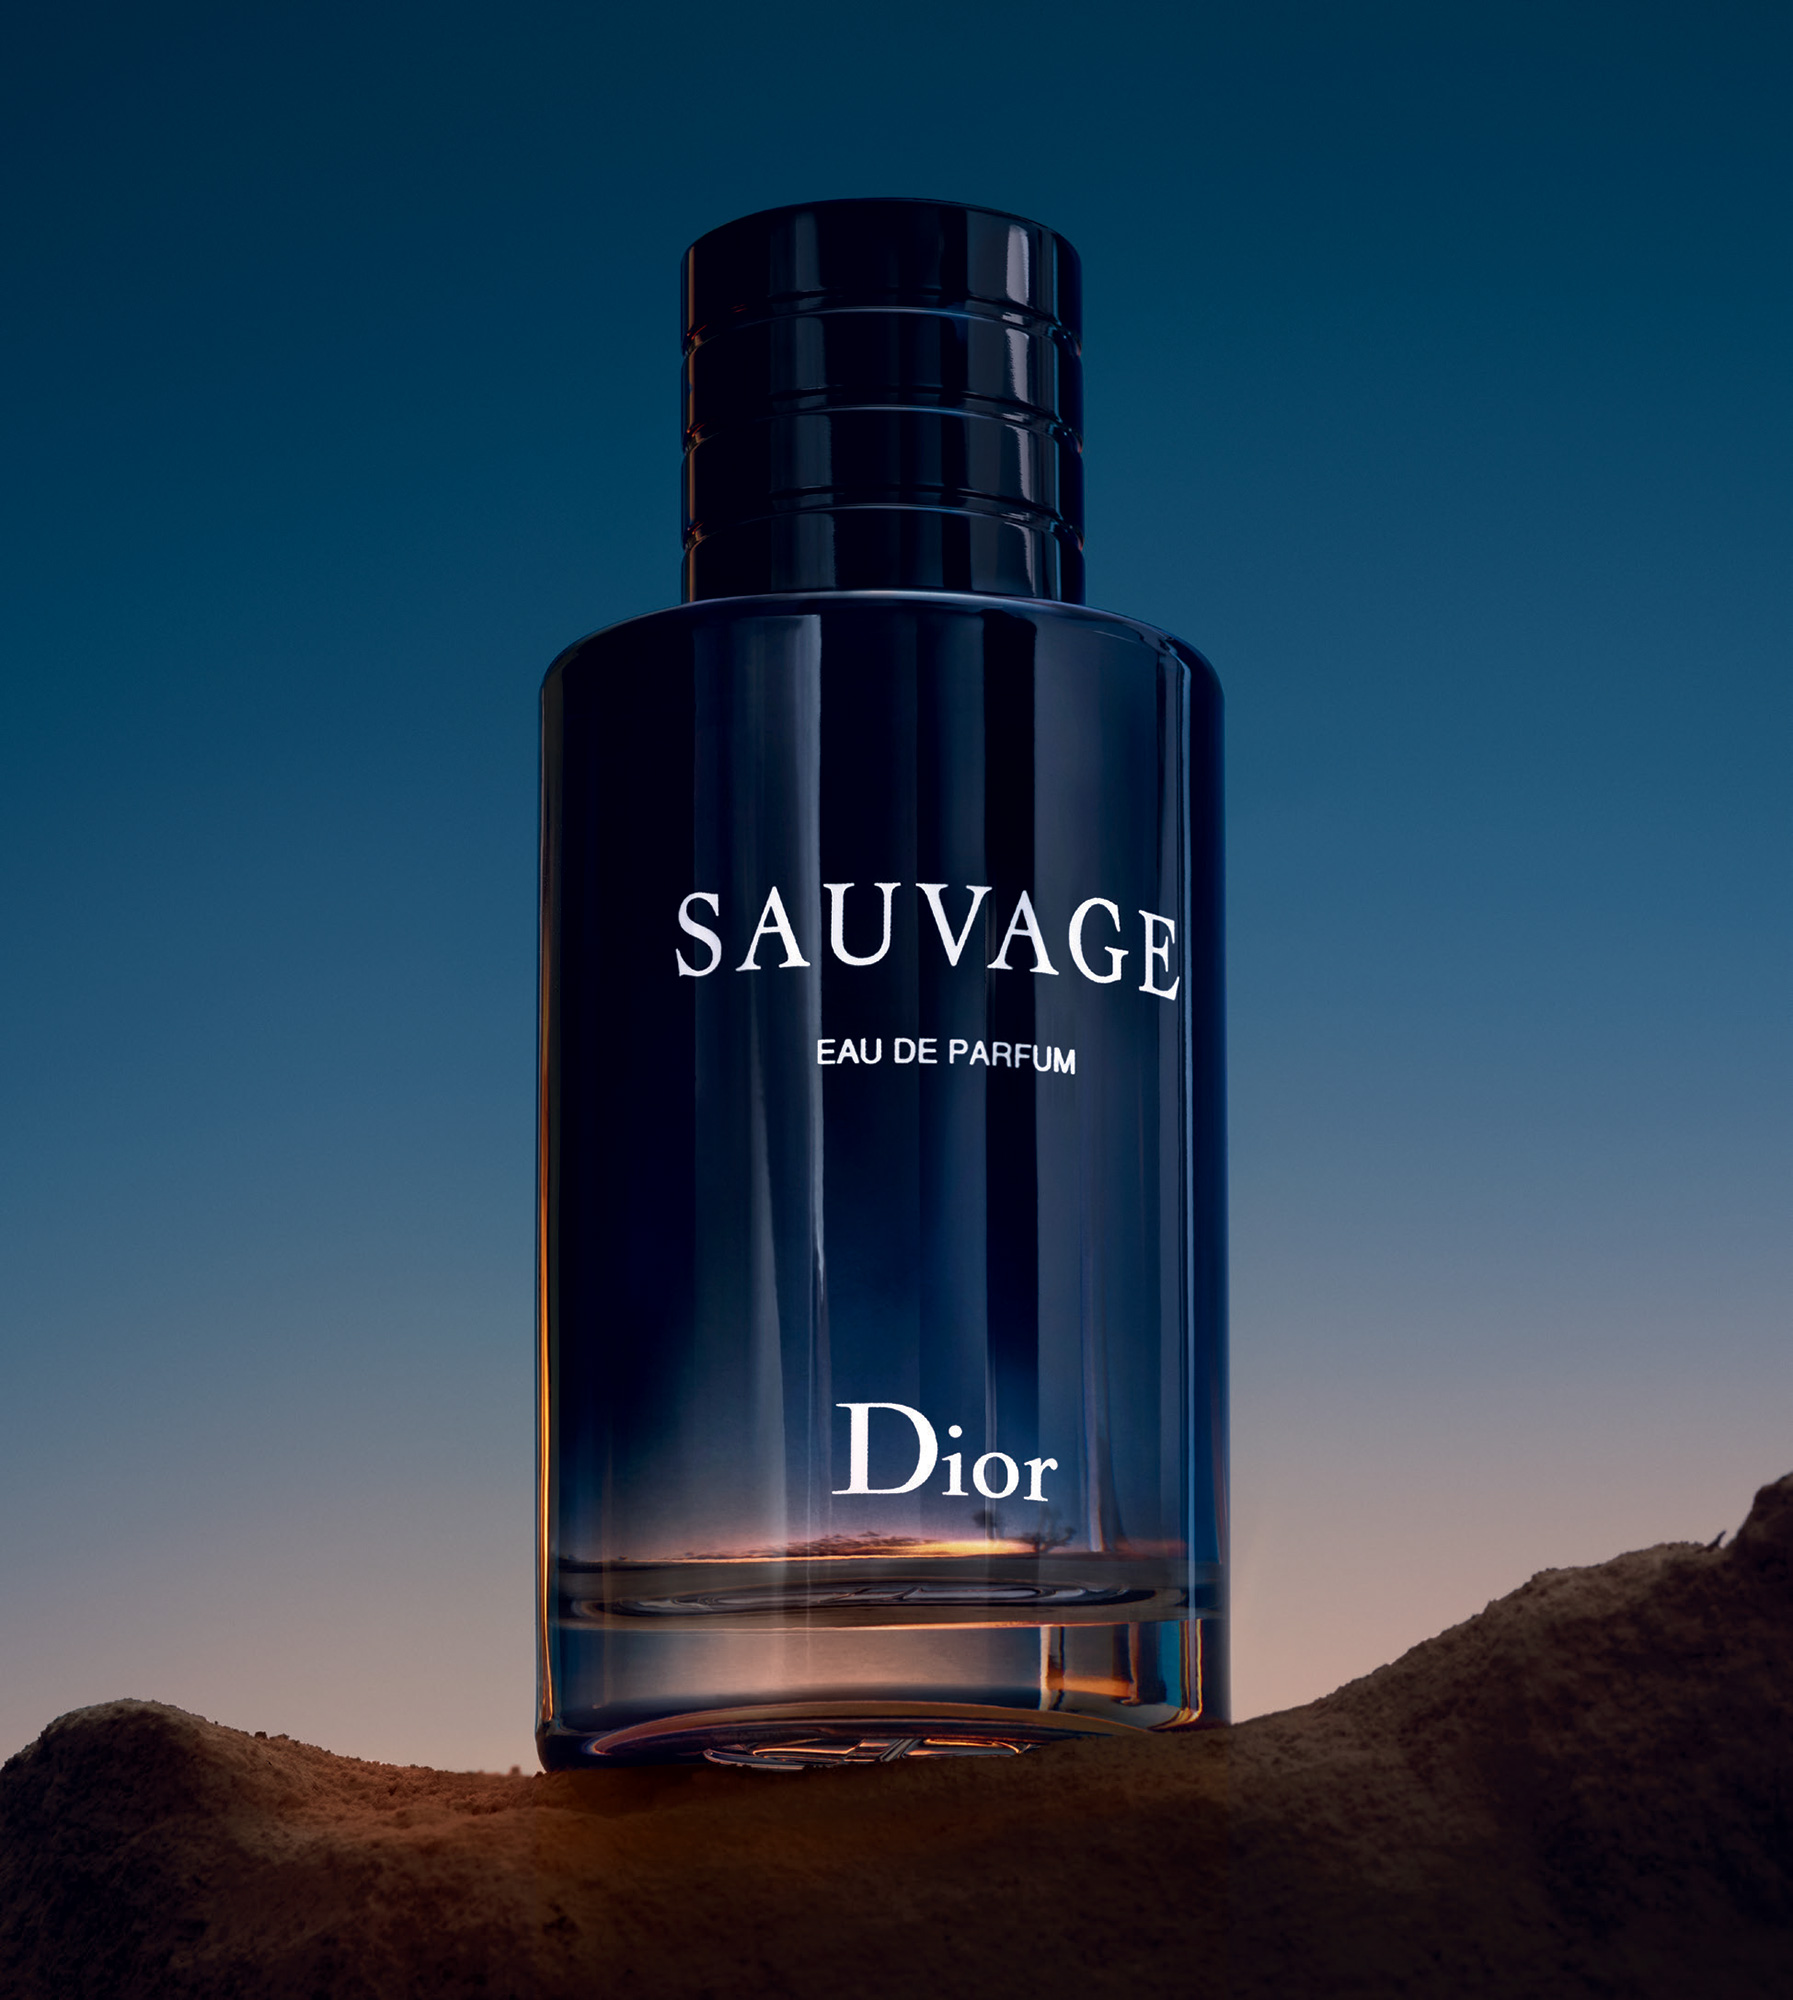 sauvage eau de parfum christian dior cologne un nouveau parfum pour homme 2018. Black Bedroom Furniture Sets. Home Design Ideas